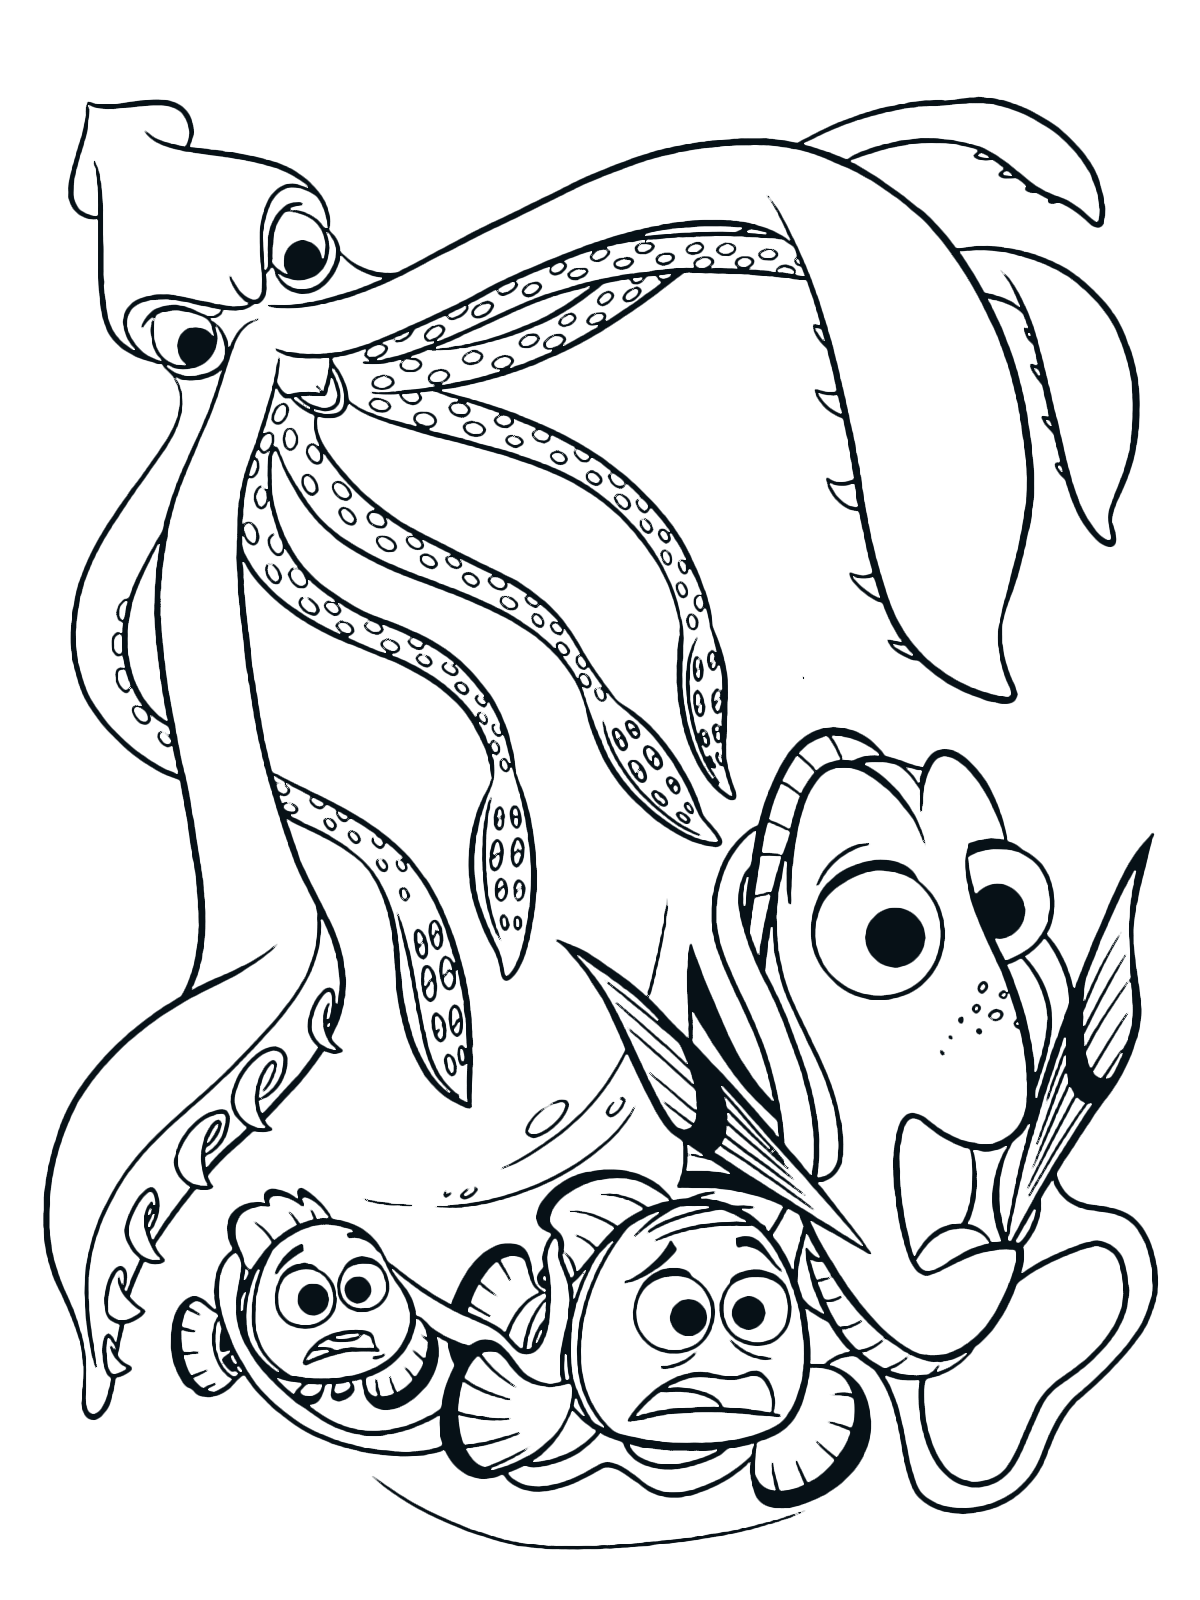 Dory Coloring Pages : coloring, pages, Finding, Coloring, Marlin, Attacked, Giant, Squid, Pages,, Cartoon, Pages